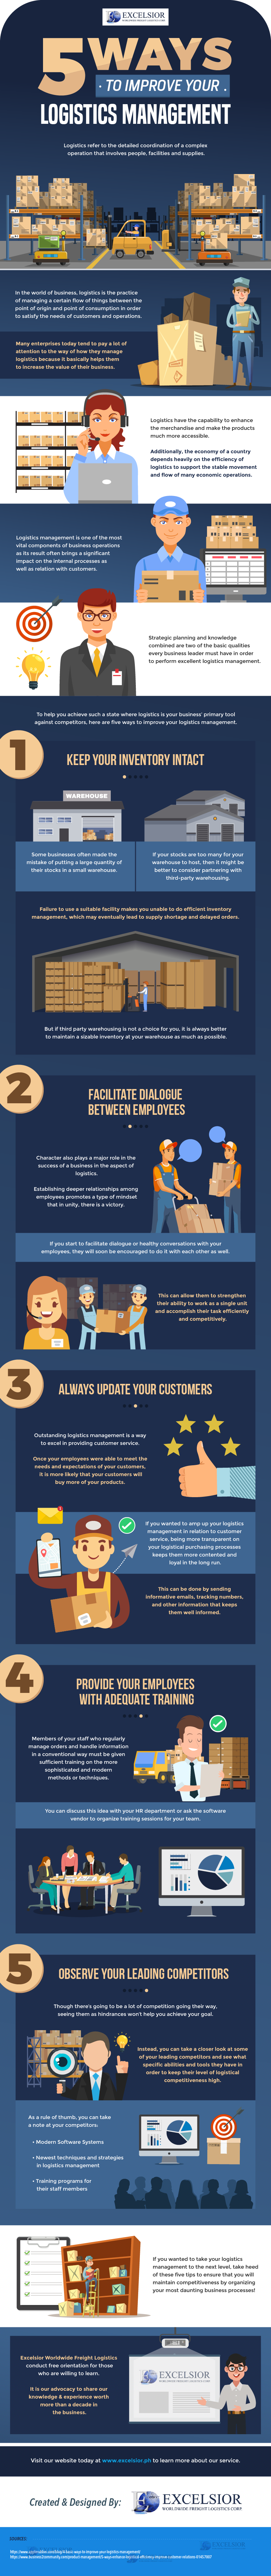 5 Ways to Improve Your Logistics Management – Infographic